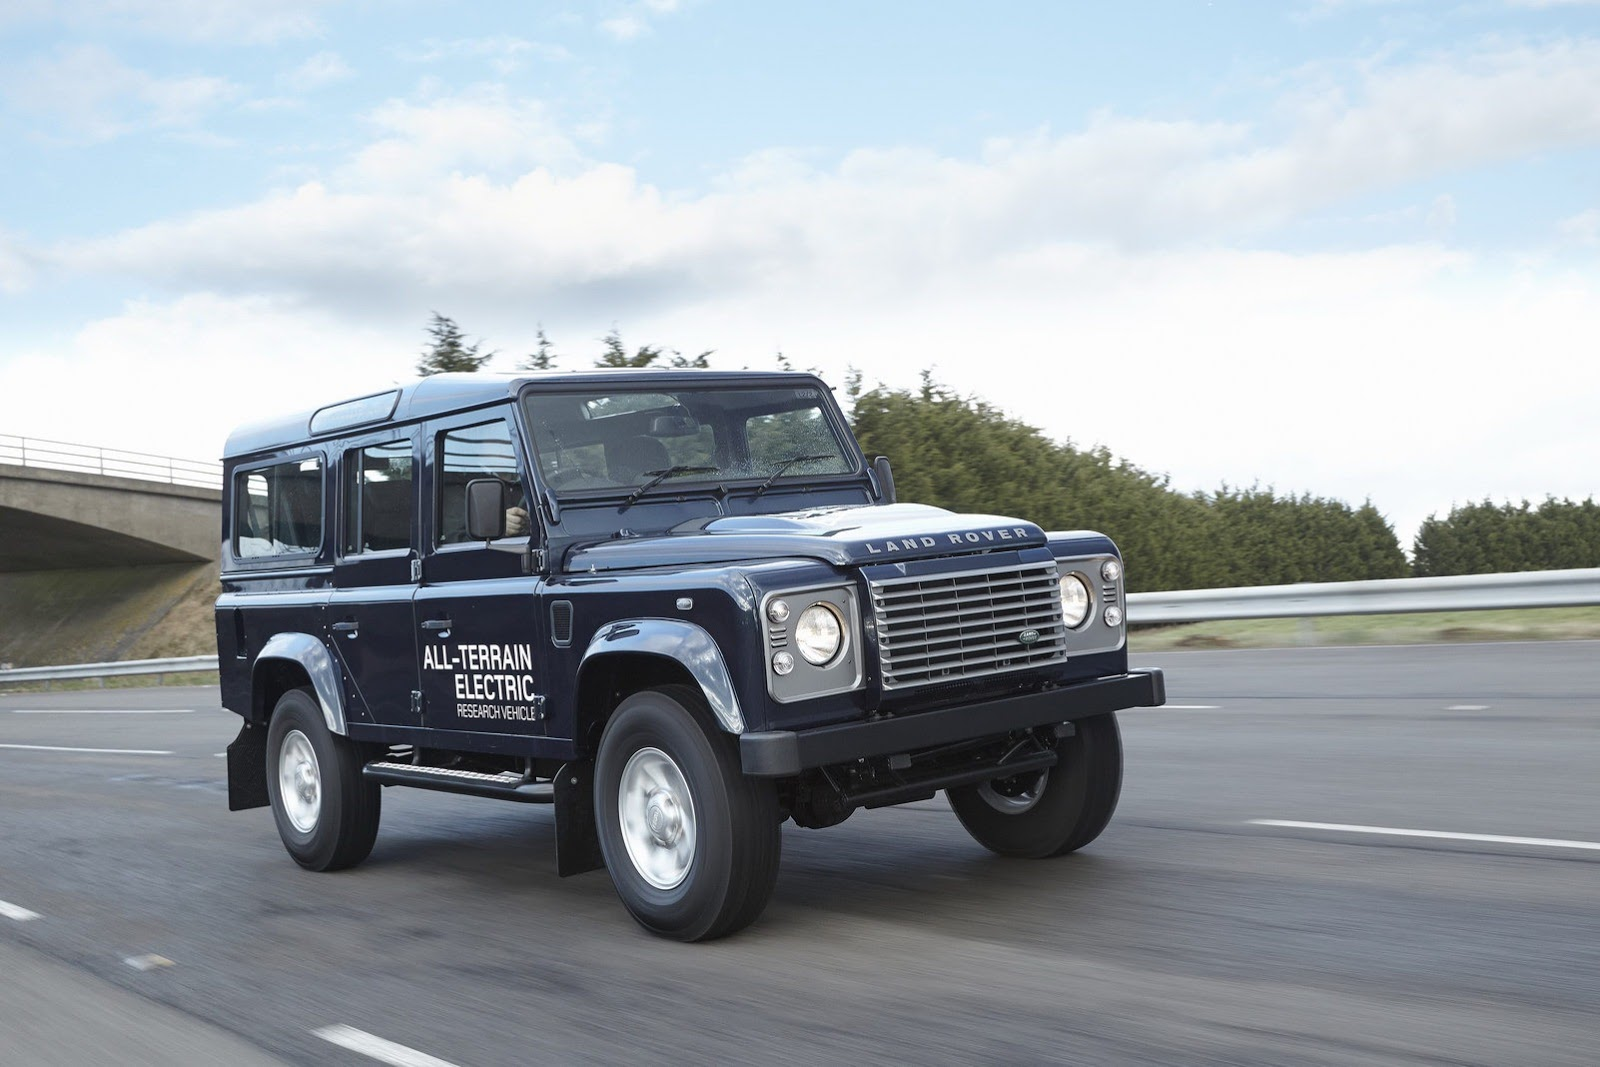 https://s1.cdn.autoevolution.com/images/news/land-rover-to-showcase-electric-defender-in-geneva-photo-gallery-55712_1.jpg